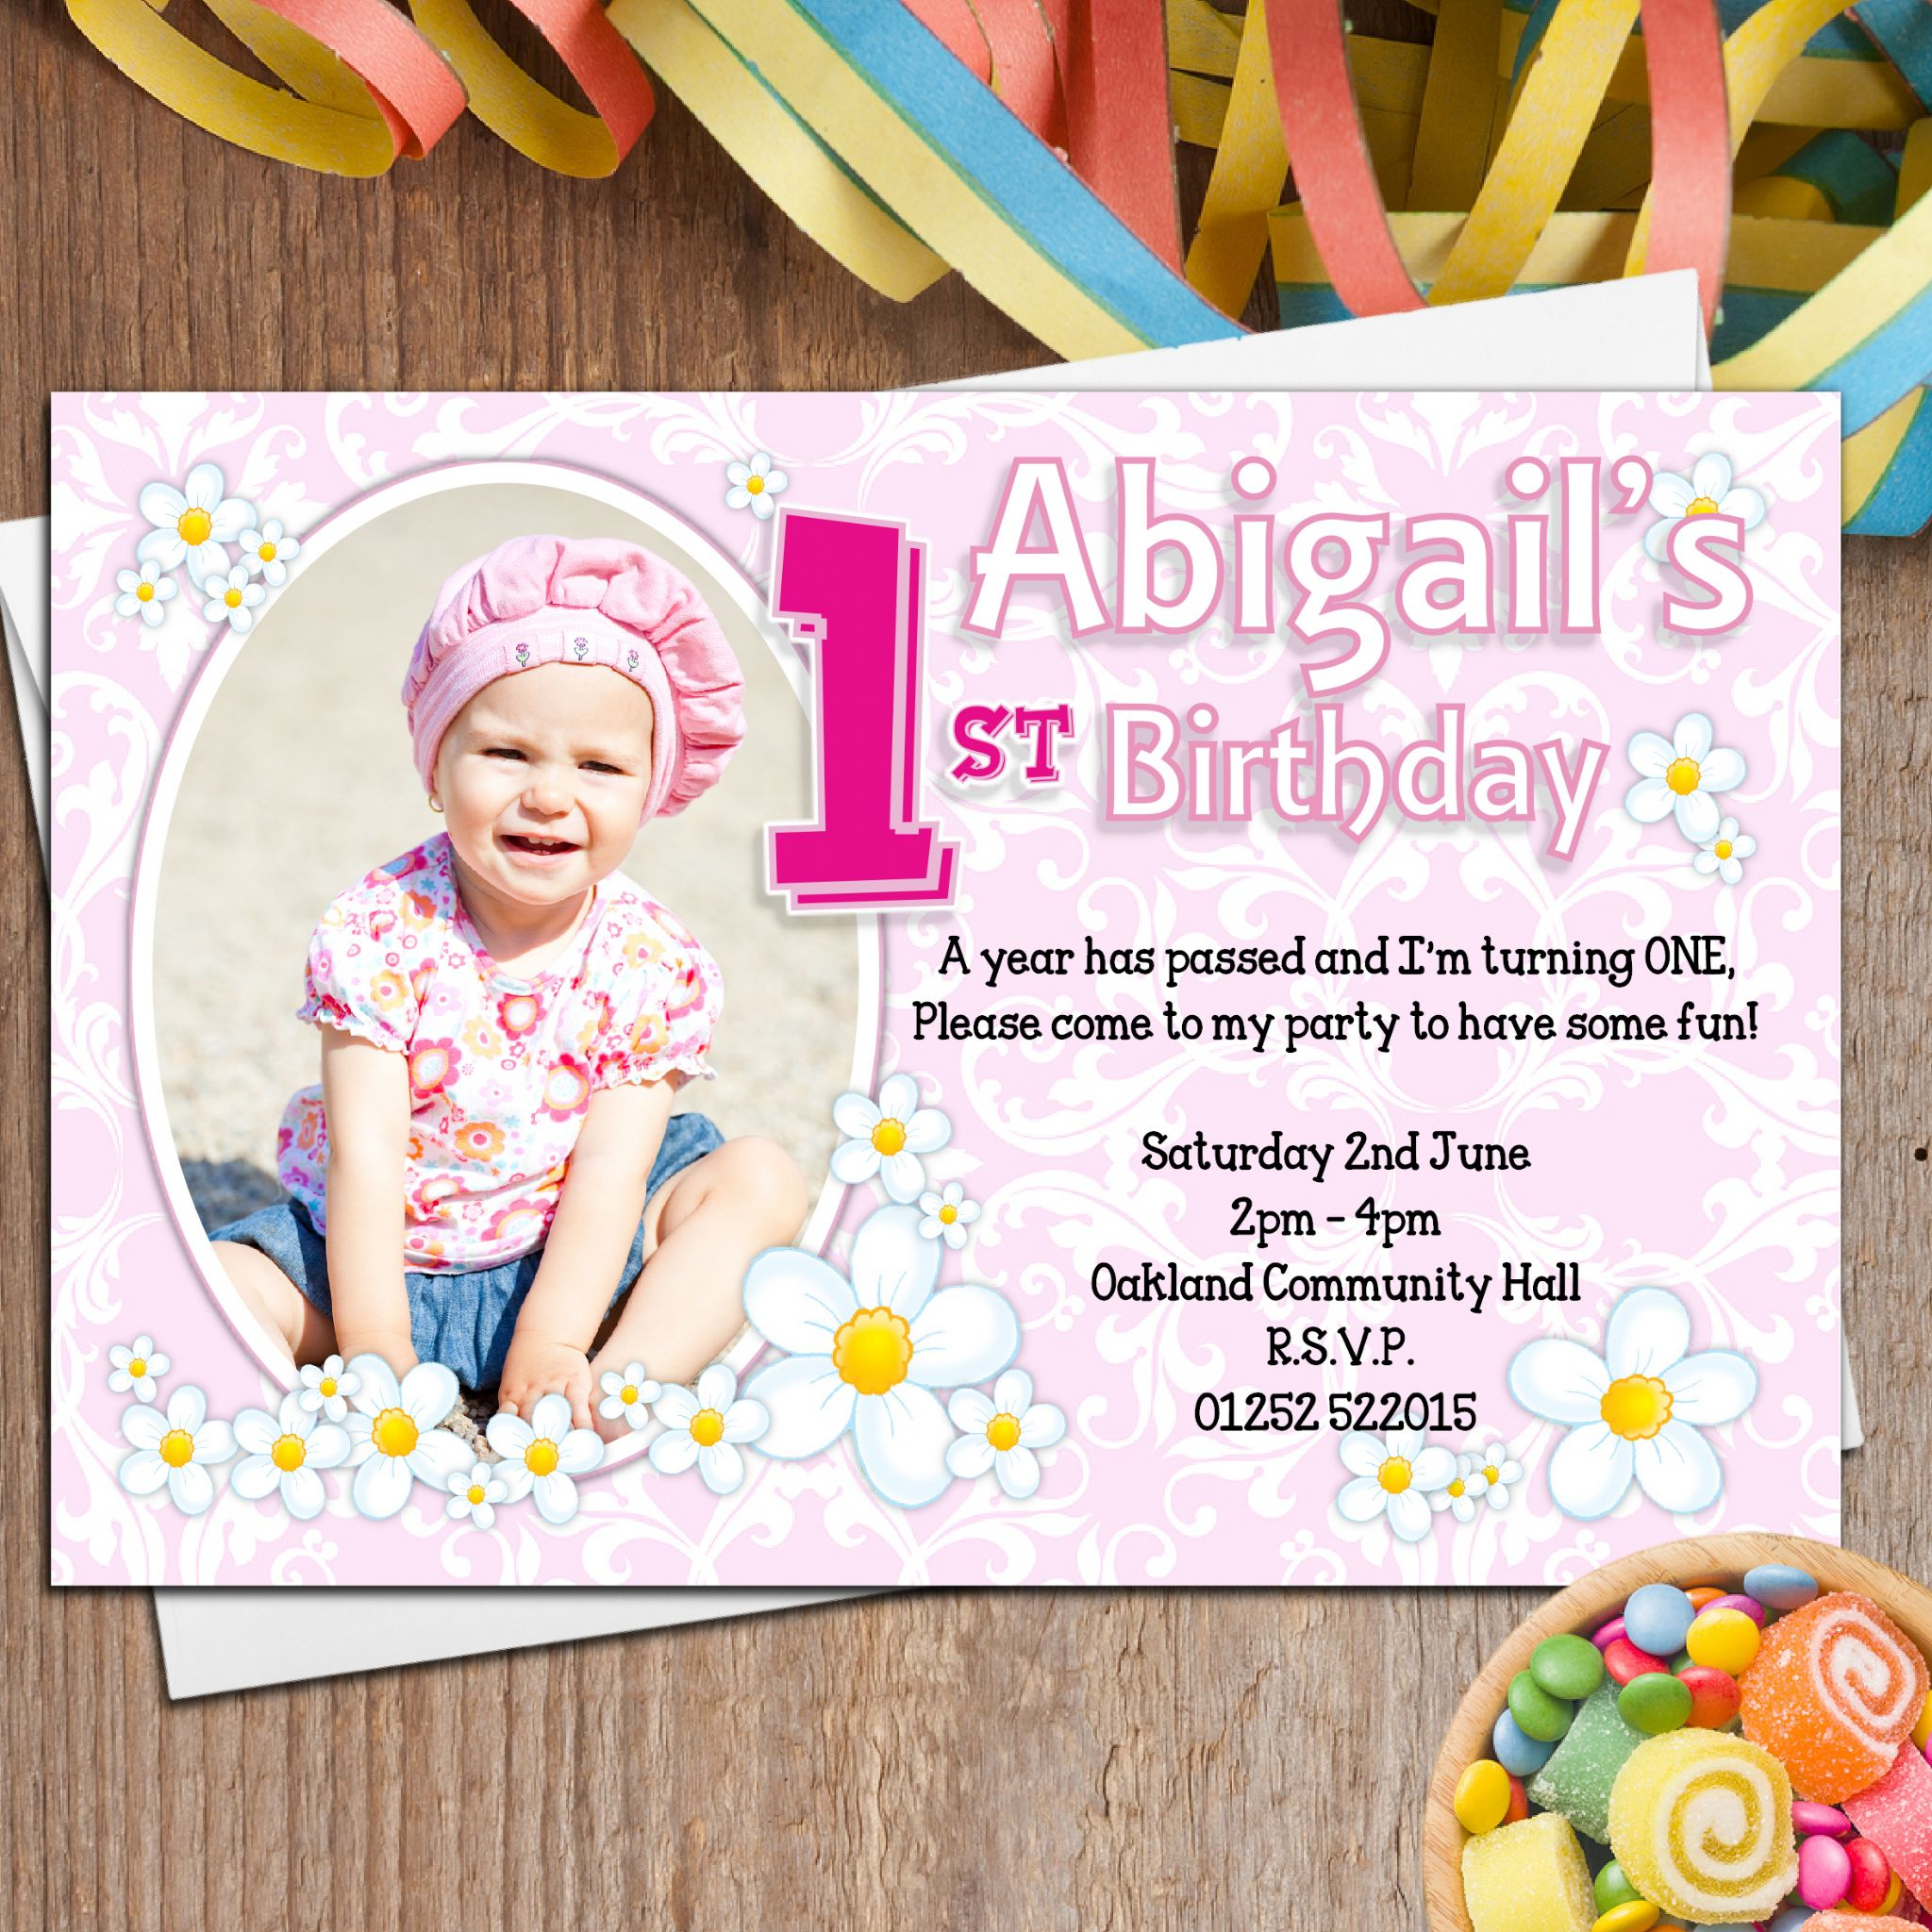 1st birthday invitation quotes for baby girl ; 10-personalised-girls-first-1st-birthday-party-photo-invitations-n27-11350-p